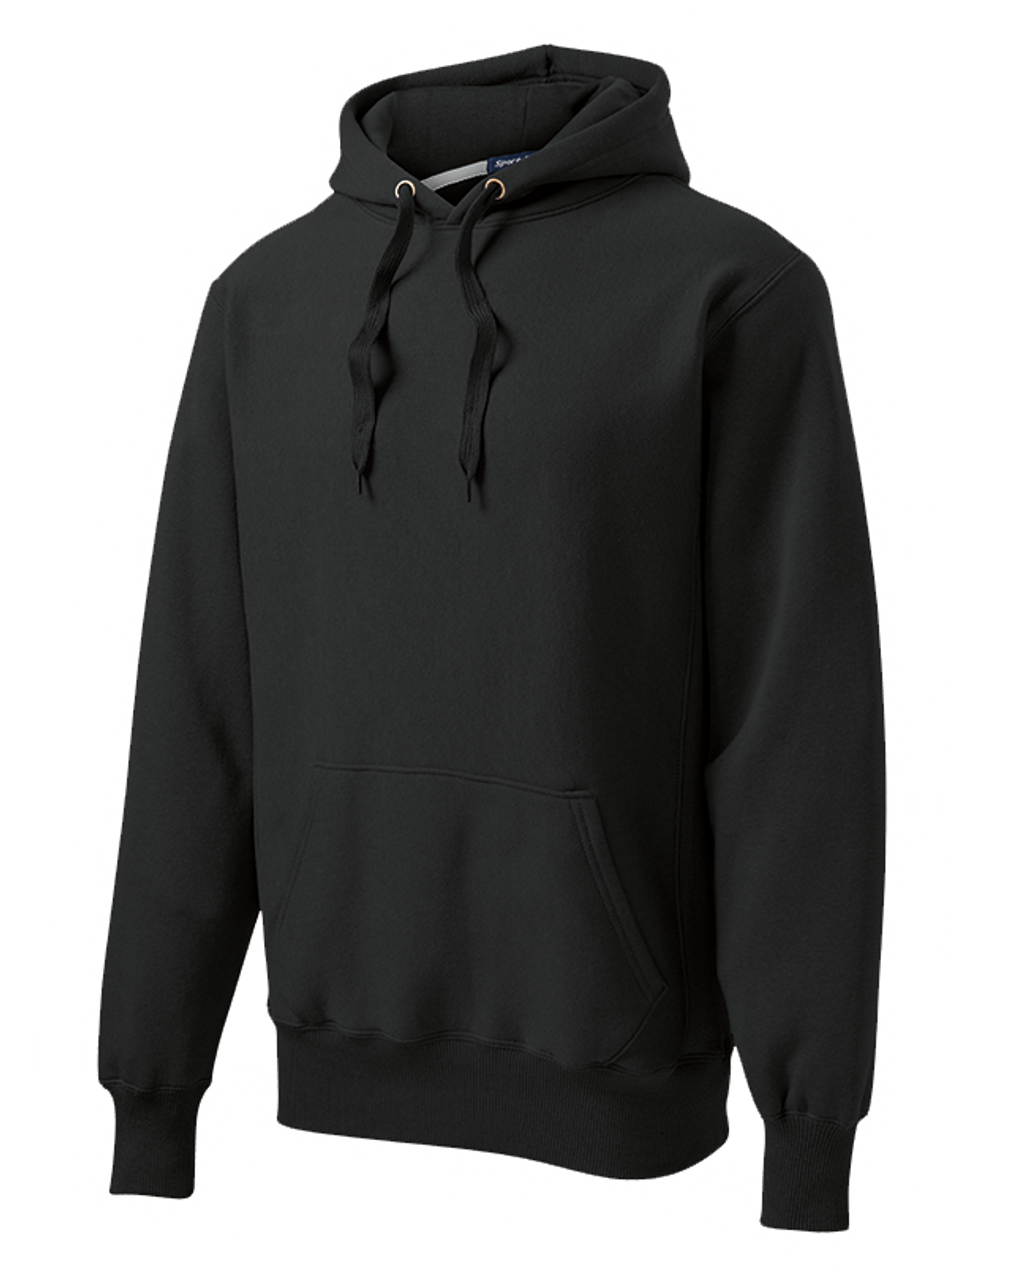 F281 Sport Tek Super Heavyweight Pullover Hooded Sweatshirt Eagle Media Inc Weighing in at a hefty 12 ounces, our super. f281 sport tek super heavyweight pullover hooded sweatshirt